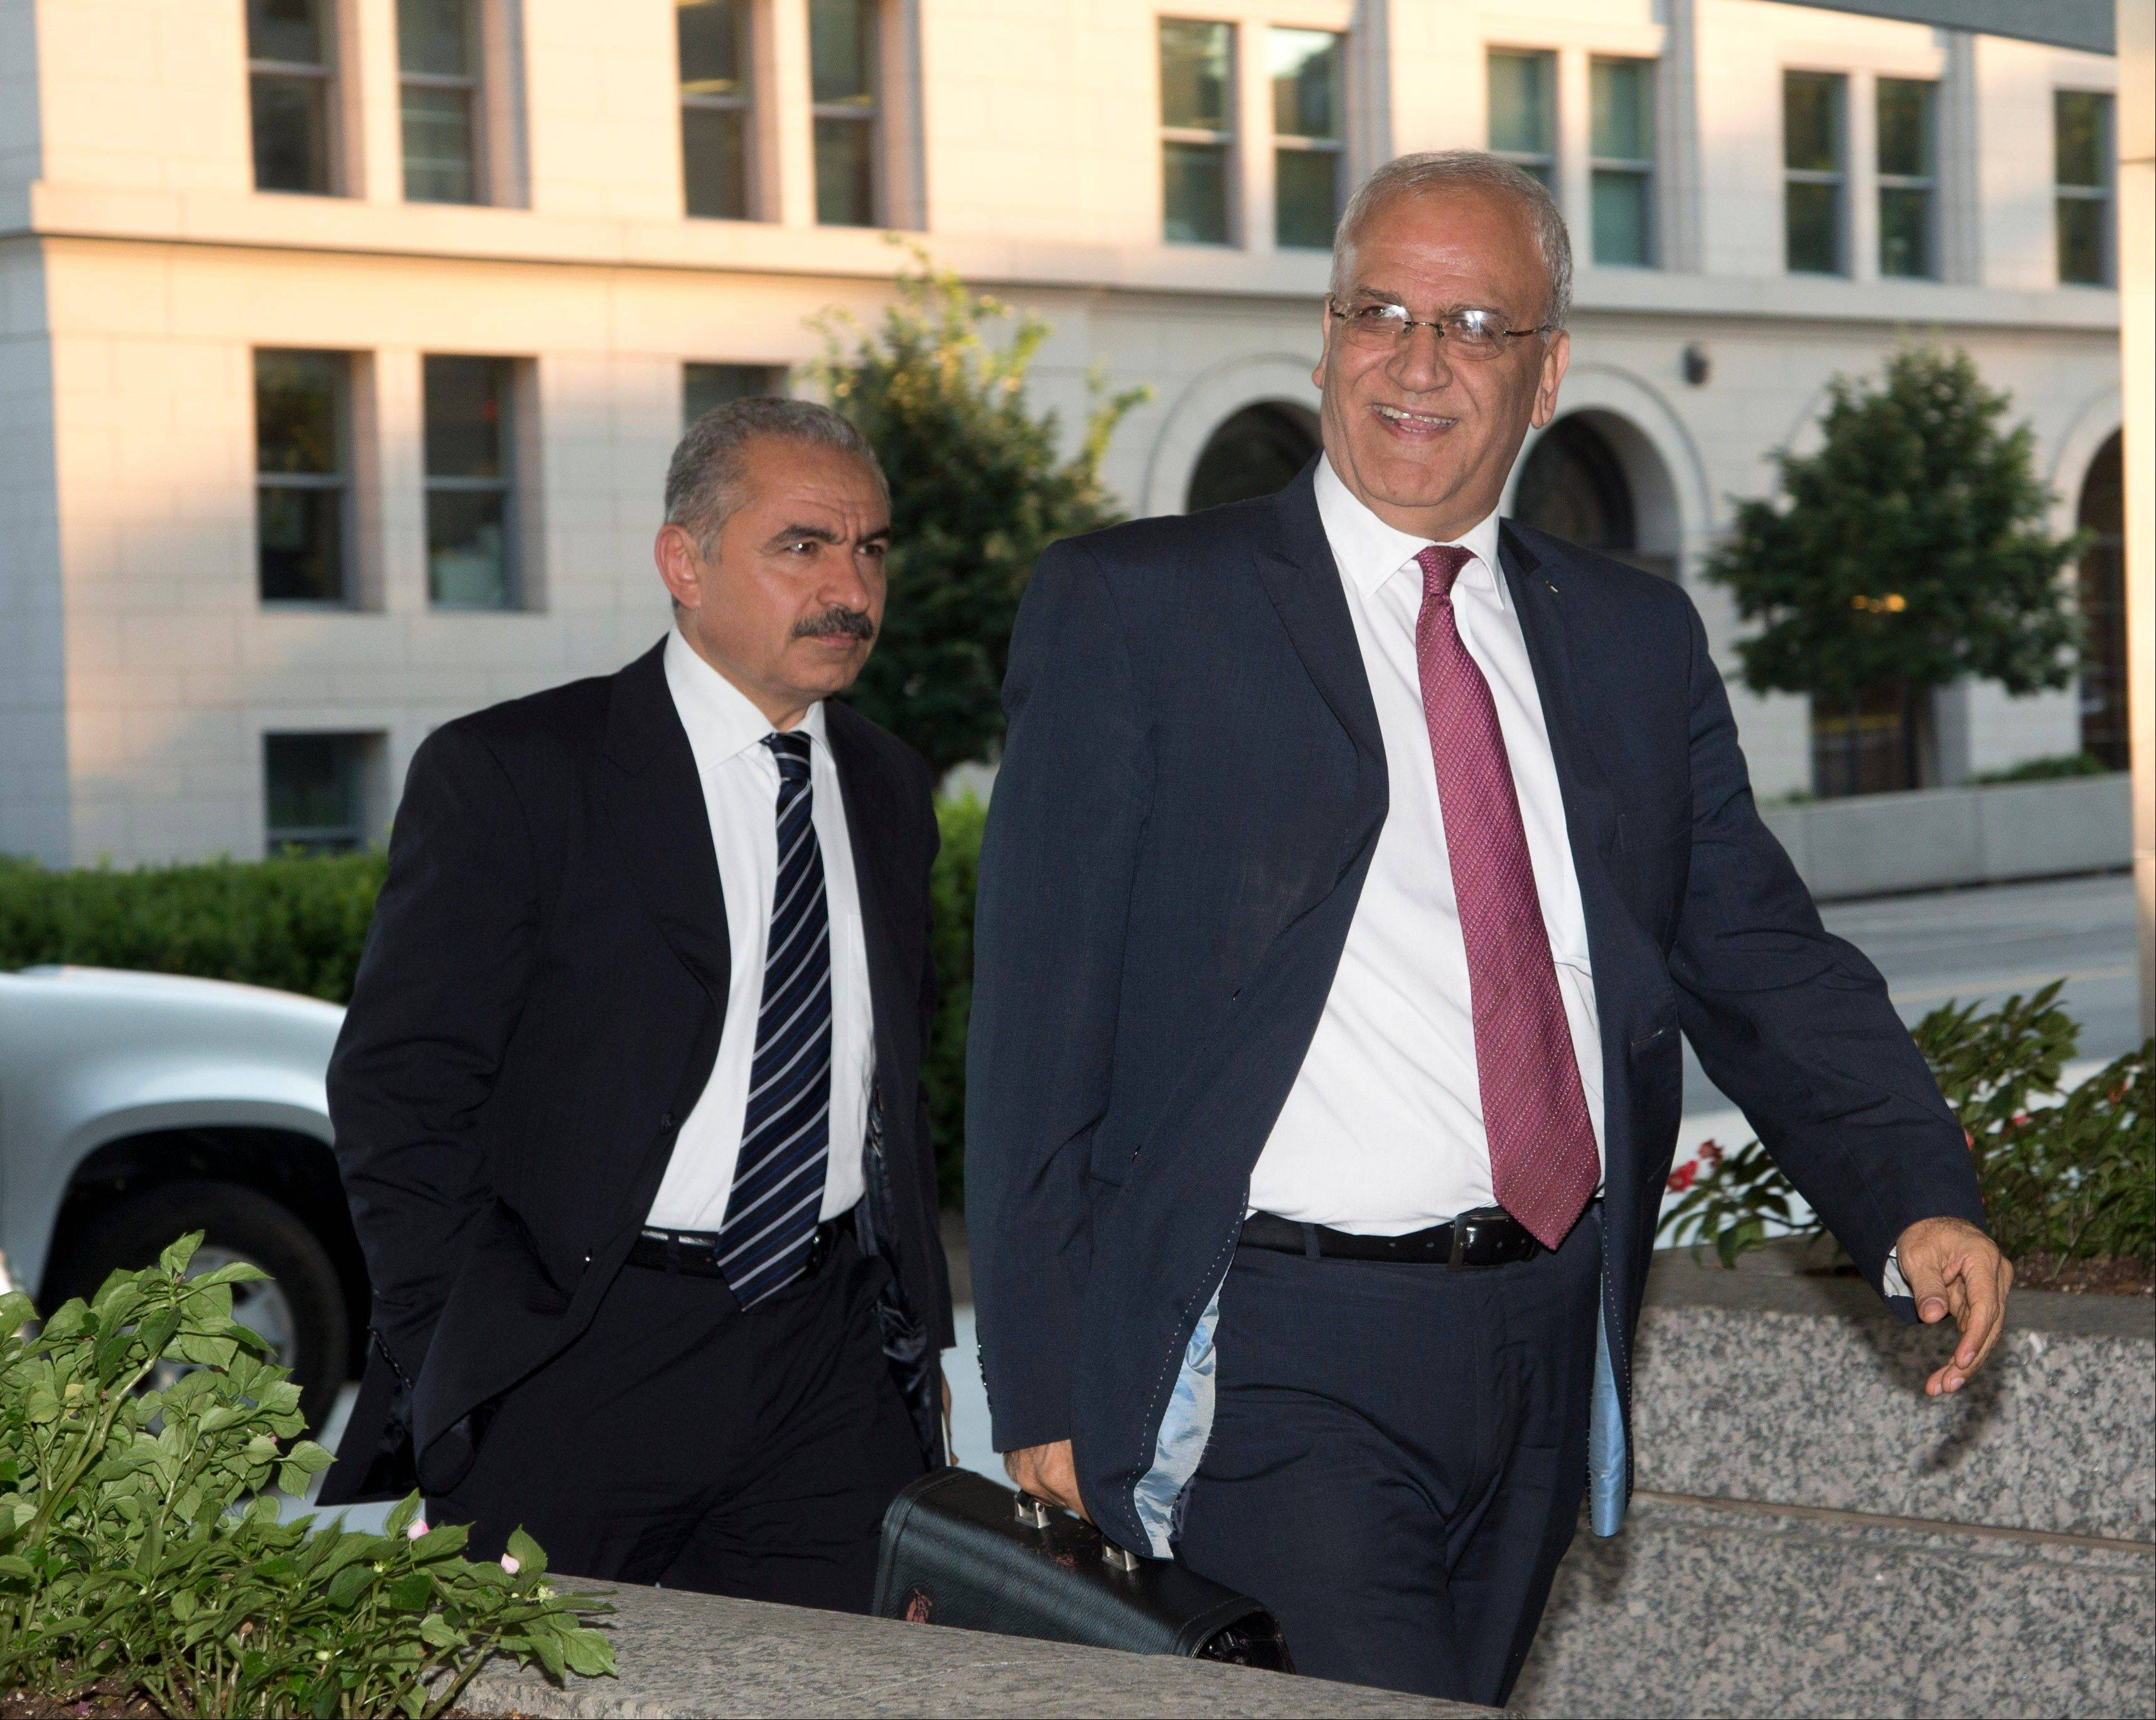 ASSOCIATED PRESSSaeb Erekat, right, Palestinian chief negotiator and Mohammad I. Shtayyeh, left, Minister Palestinian Economic Council for Development and Reconstruction, arrive at the State Department in Washington Monday for the start of Mideast peace talks.